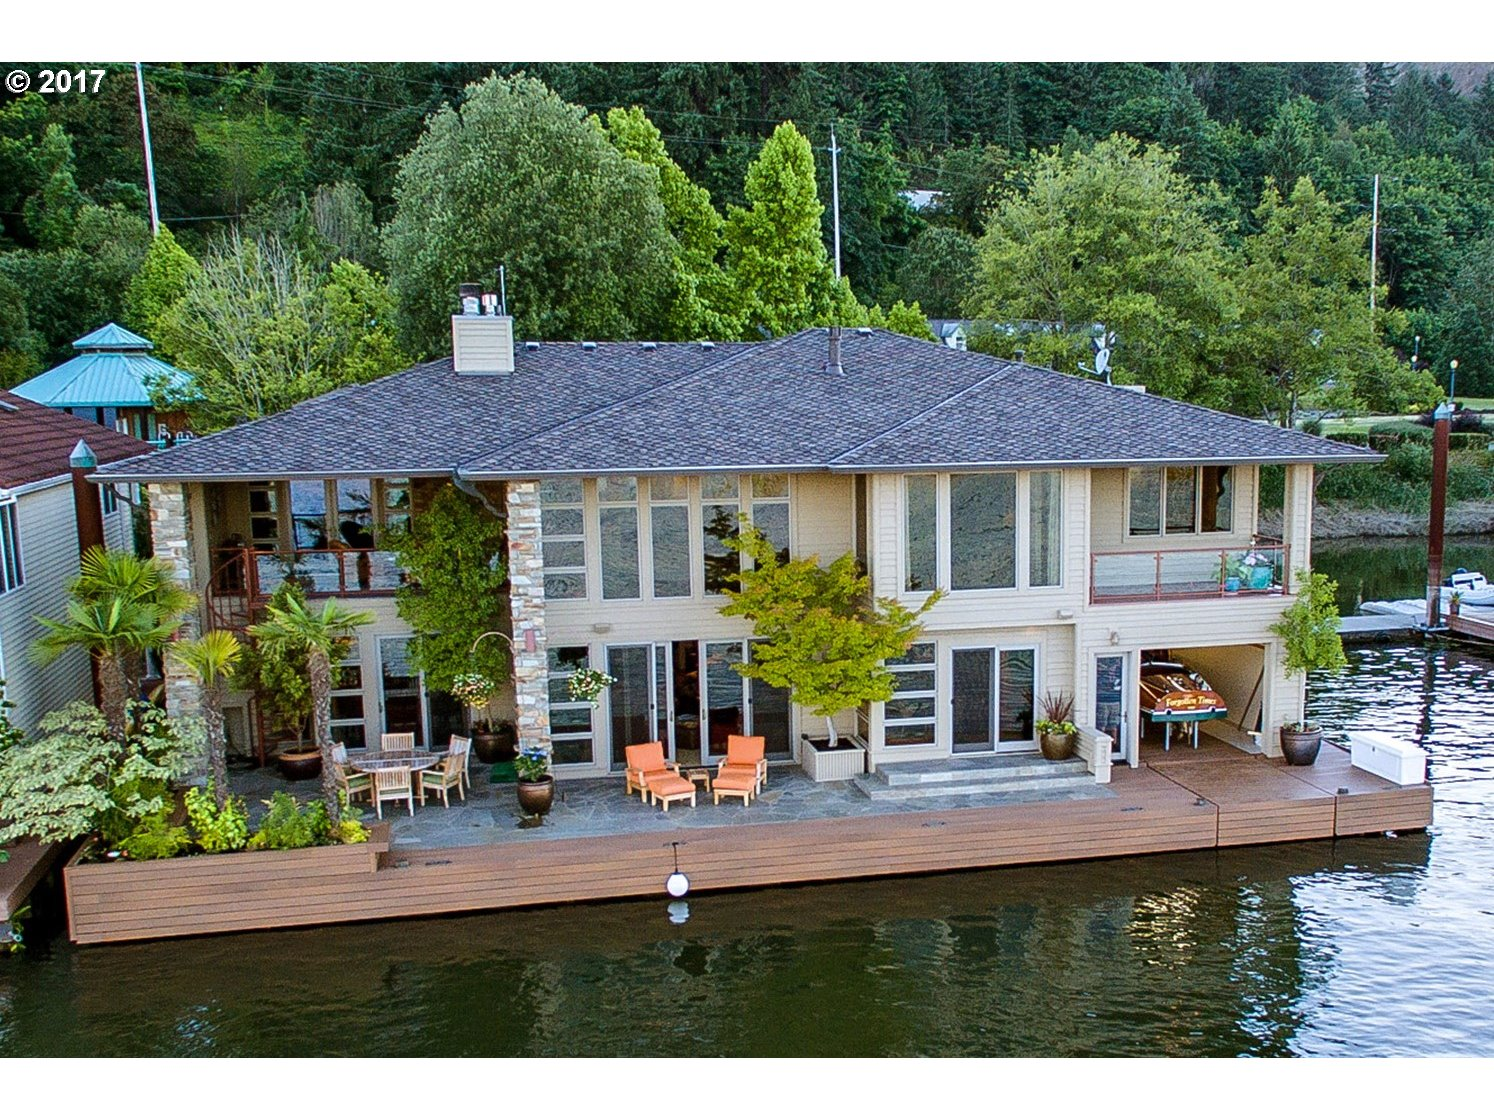 floating homes for sale in portland oregon portland